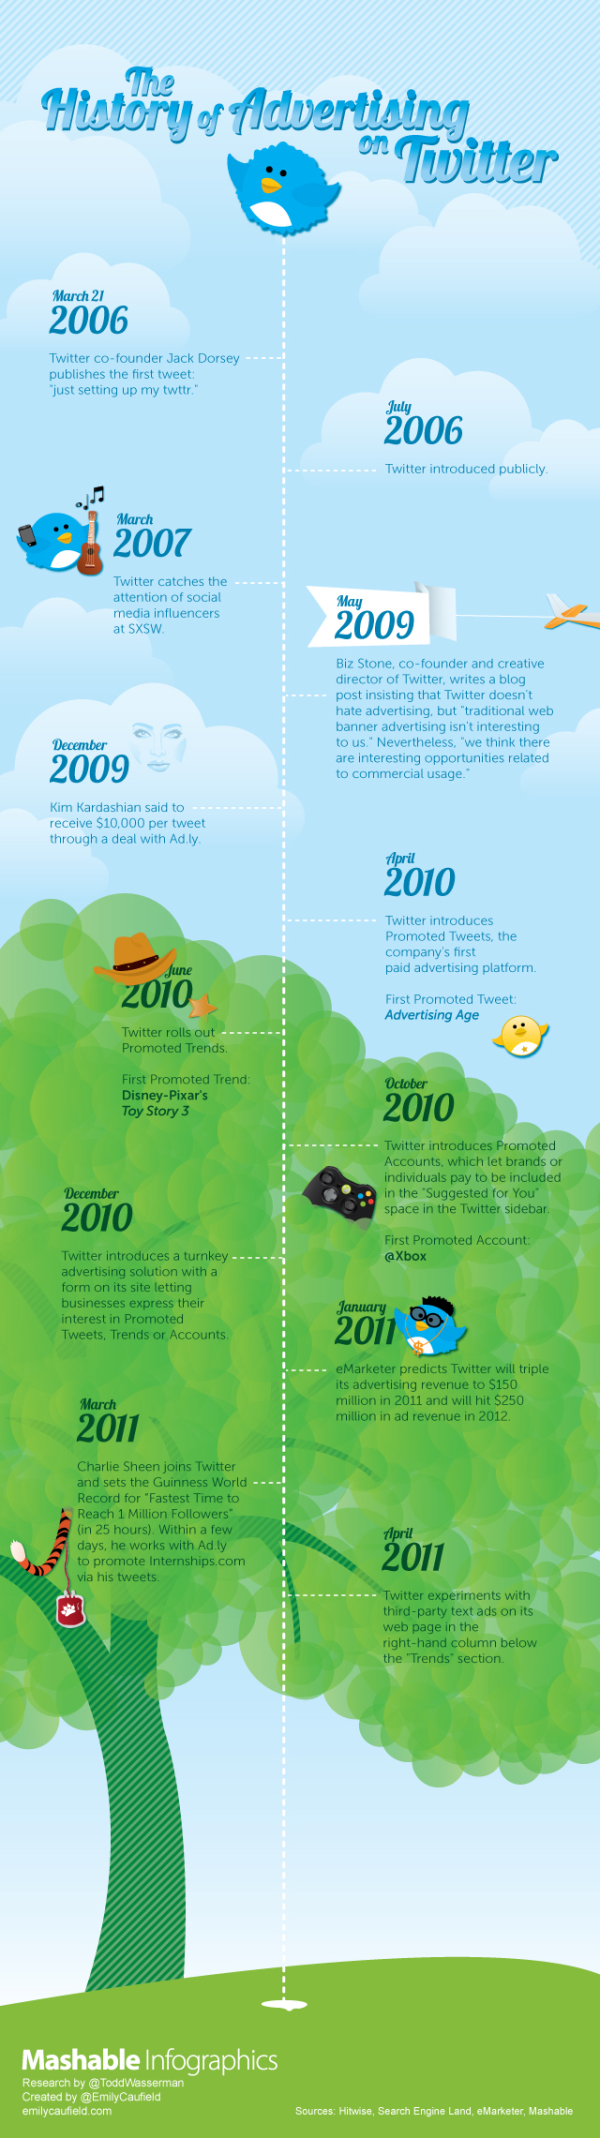 Mashable History of Twitter Advertising Infographic resized 600